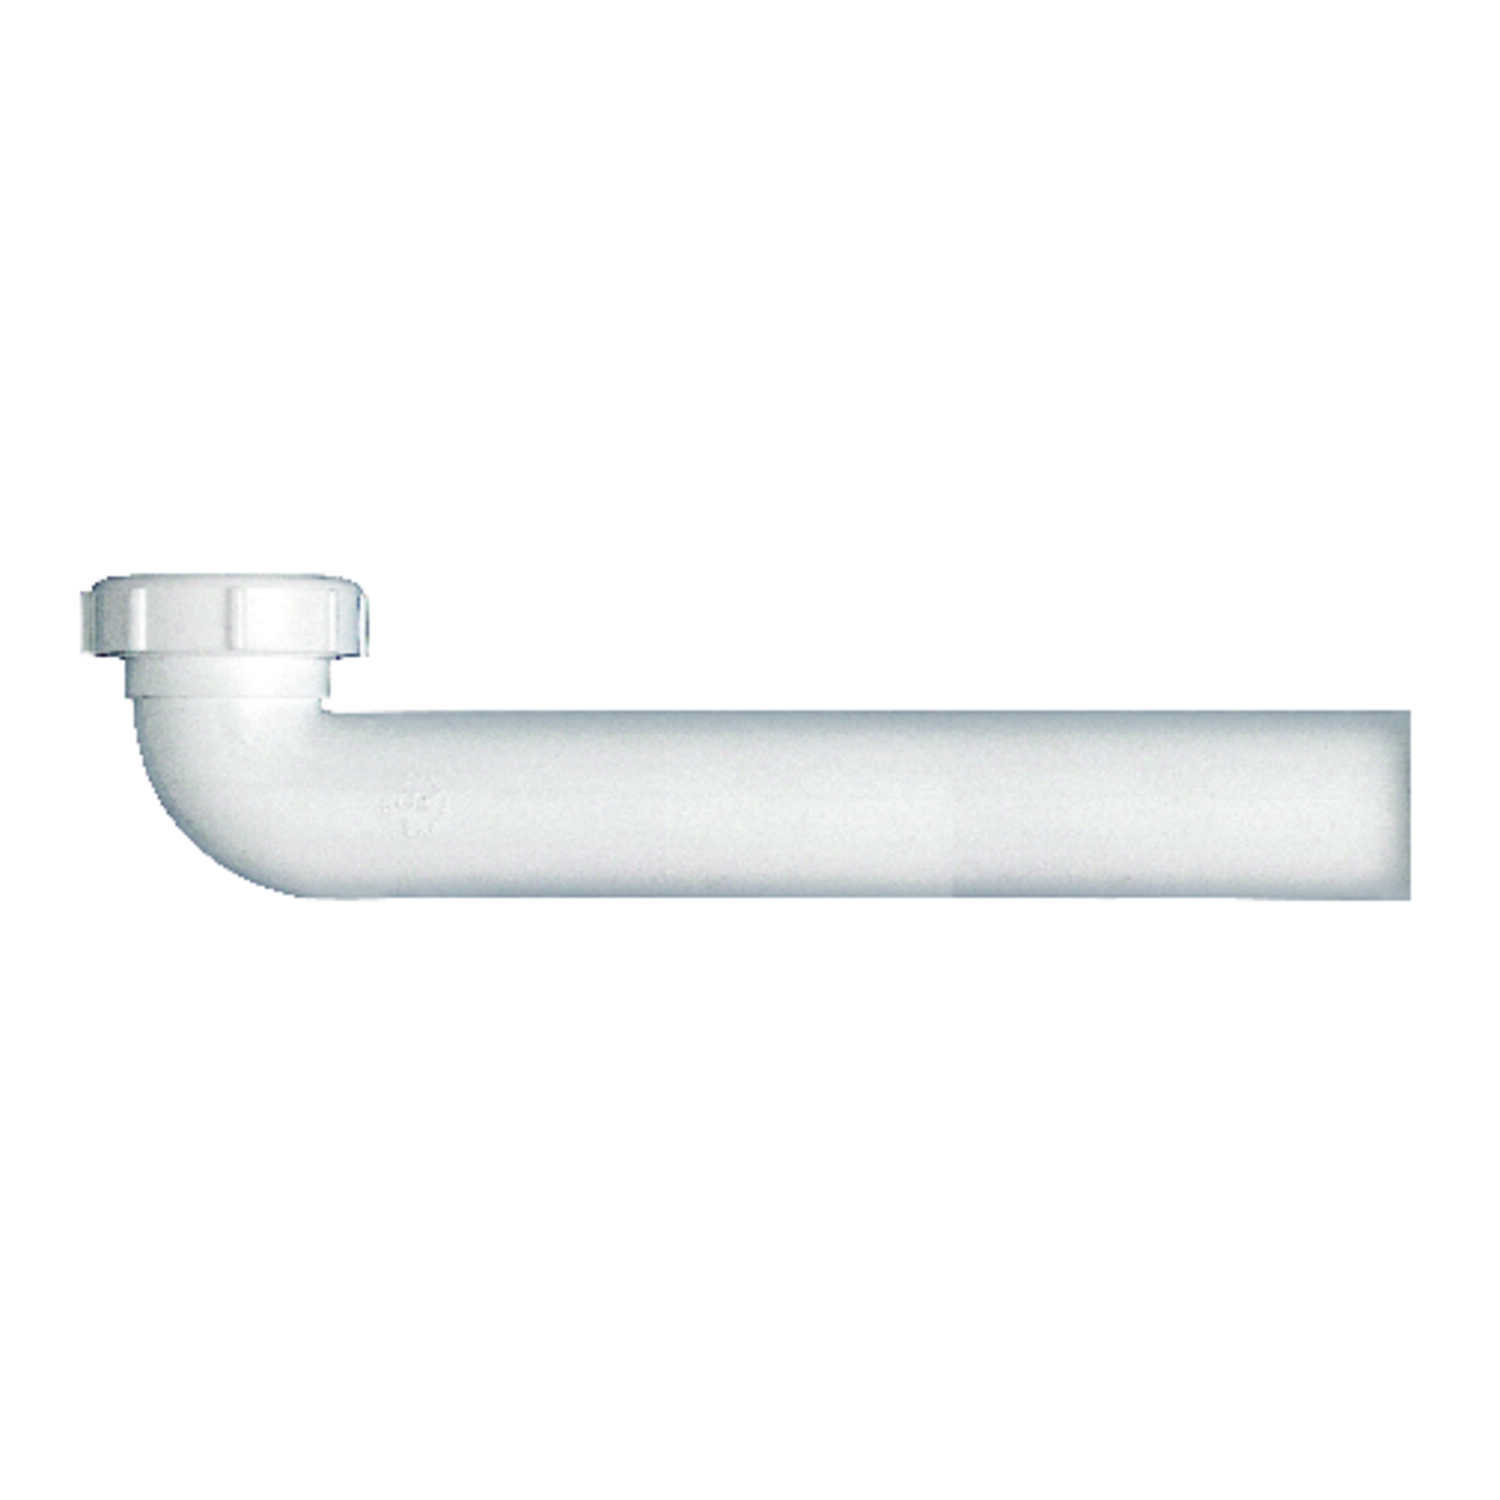 Ace  1-1/2 in. Dia. x 9-1/2 in. L Plastic  Waste Arm